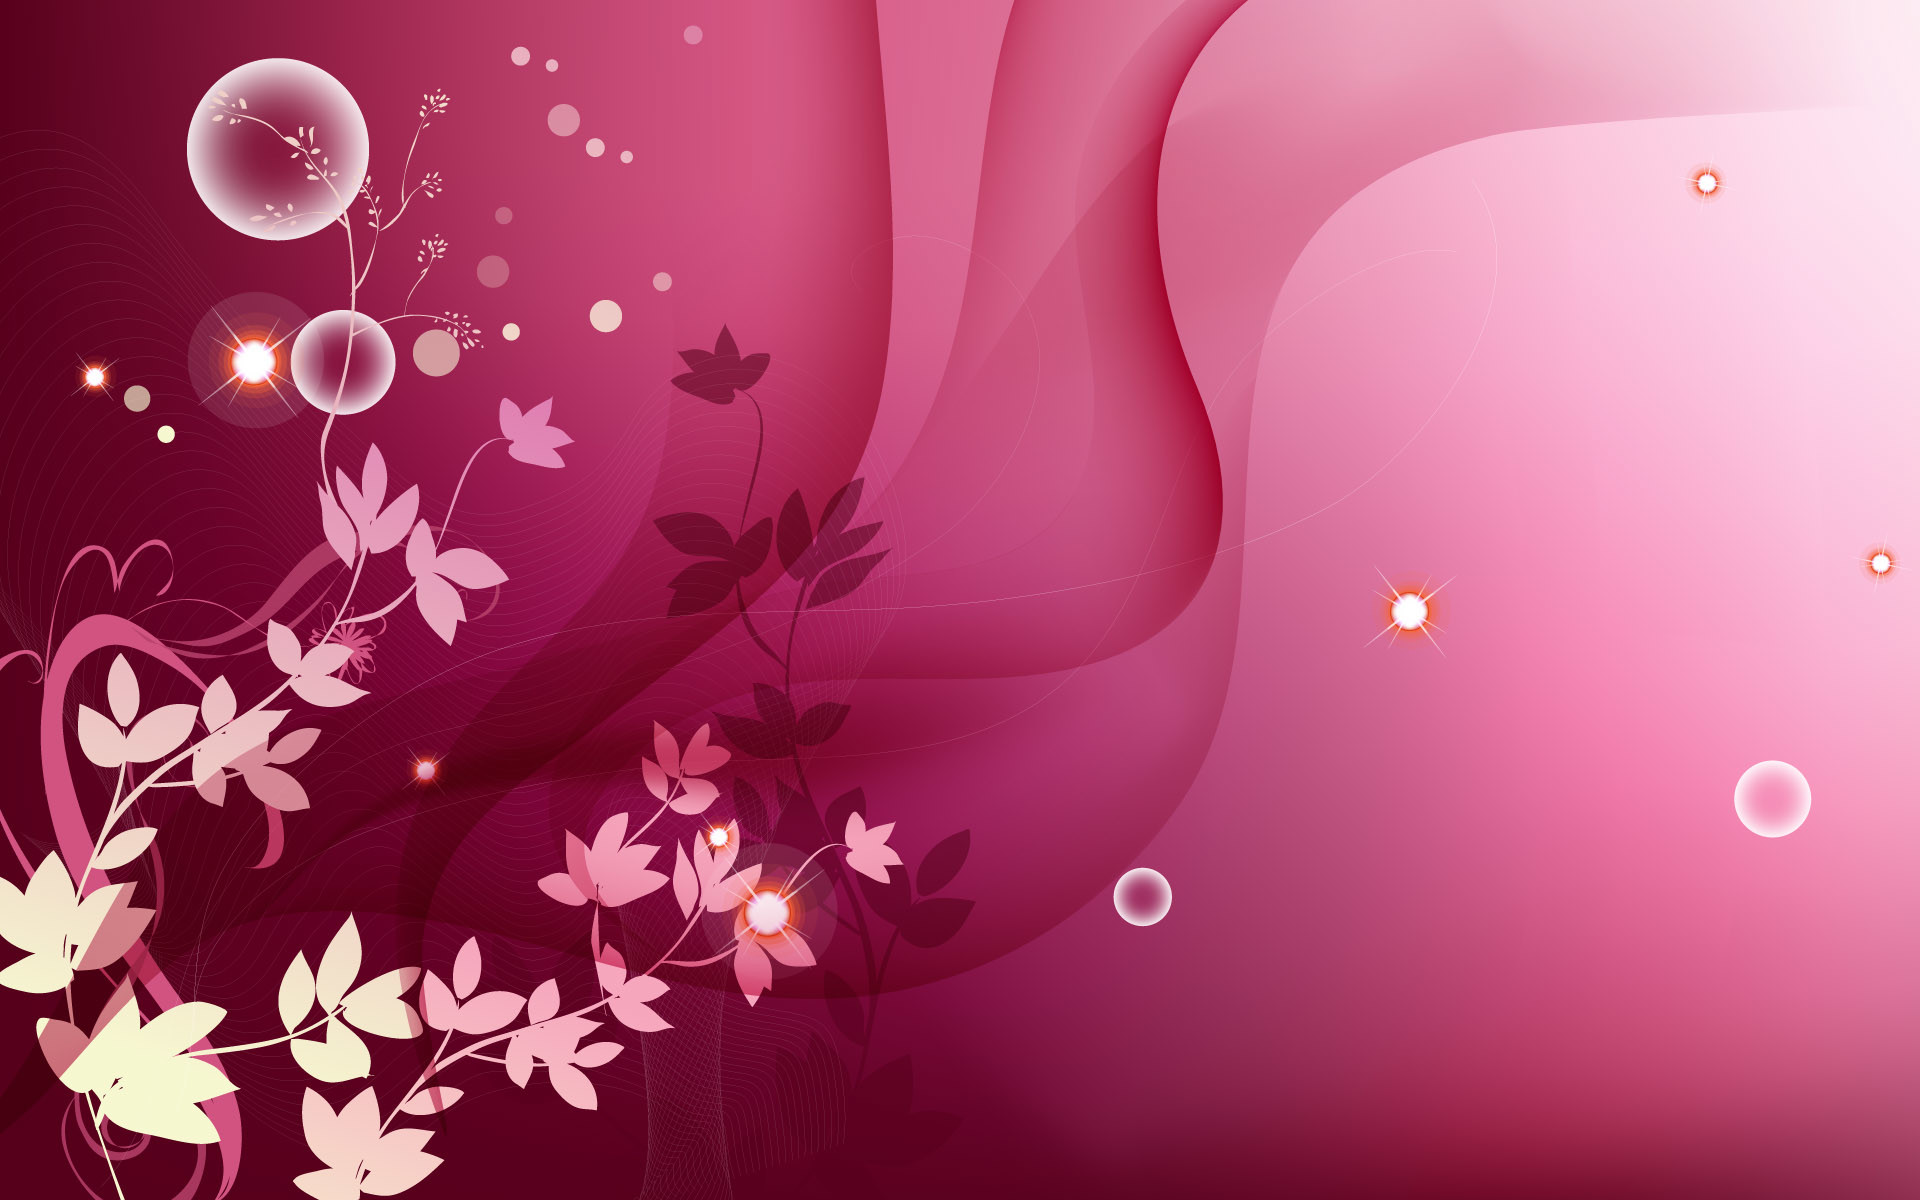 Cute Girly Backgrounds for Desktop